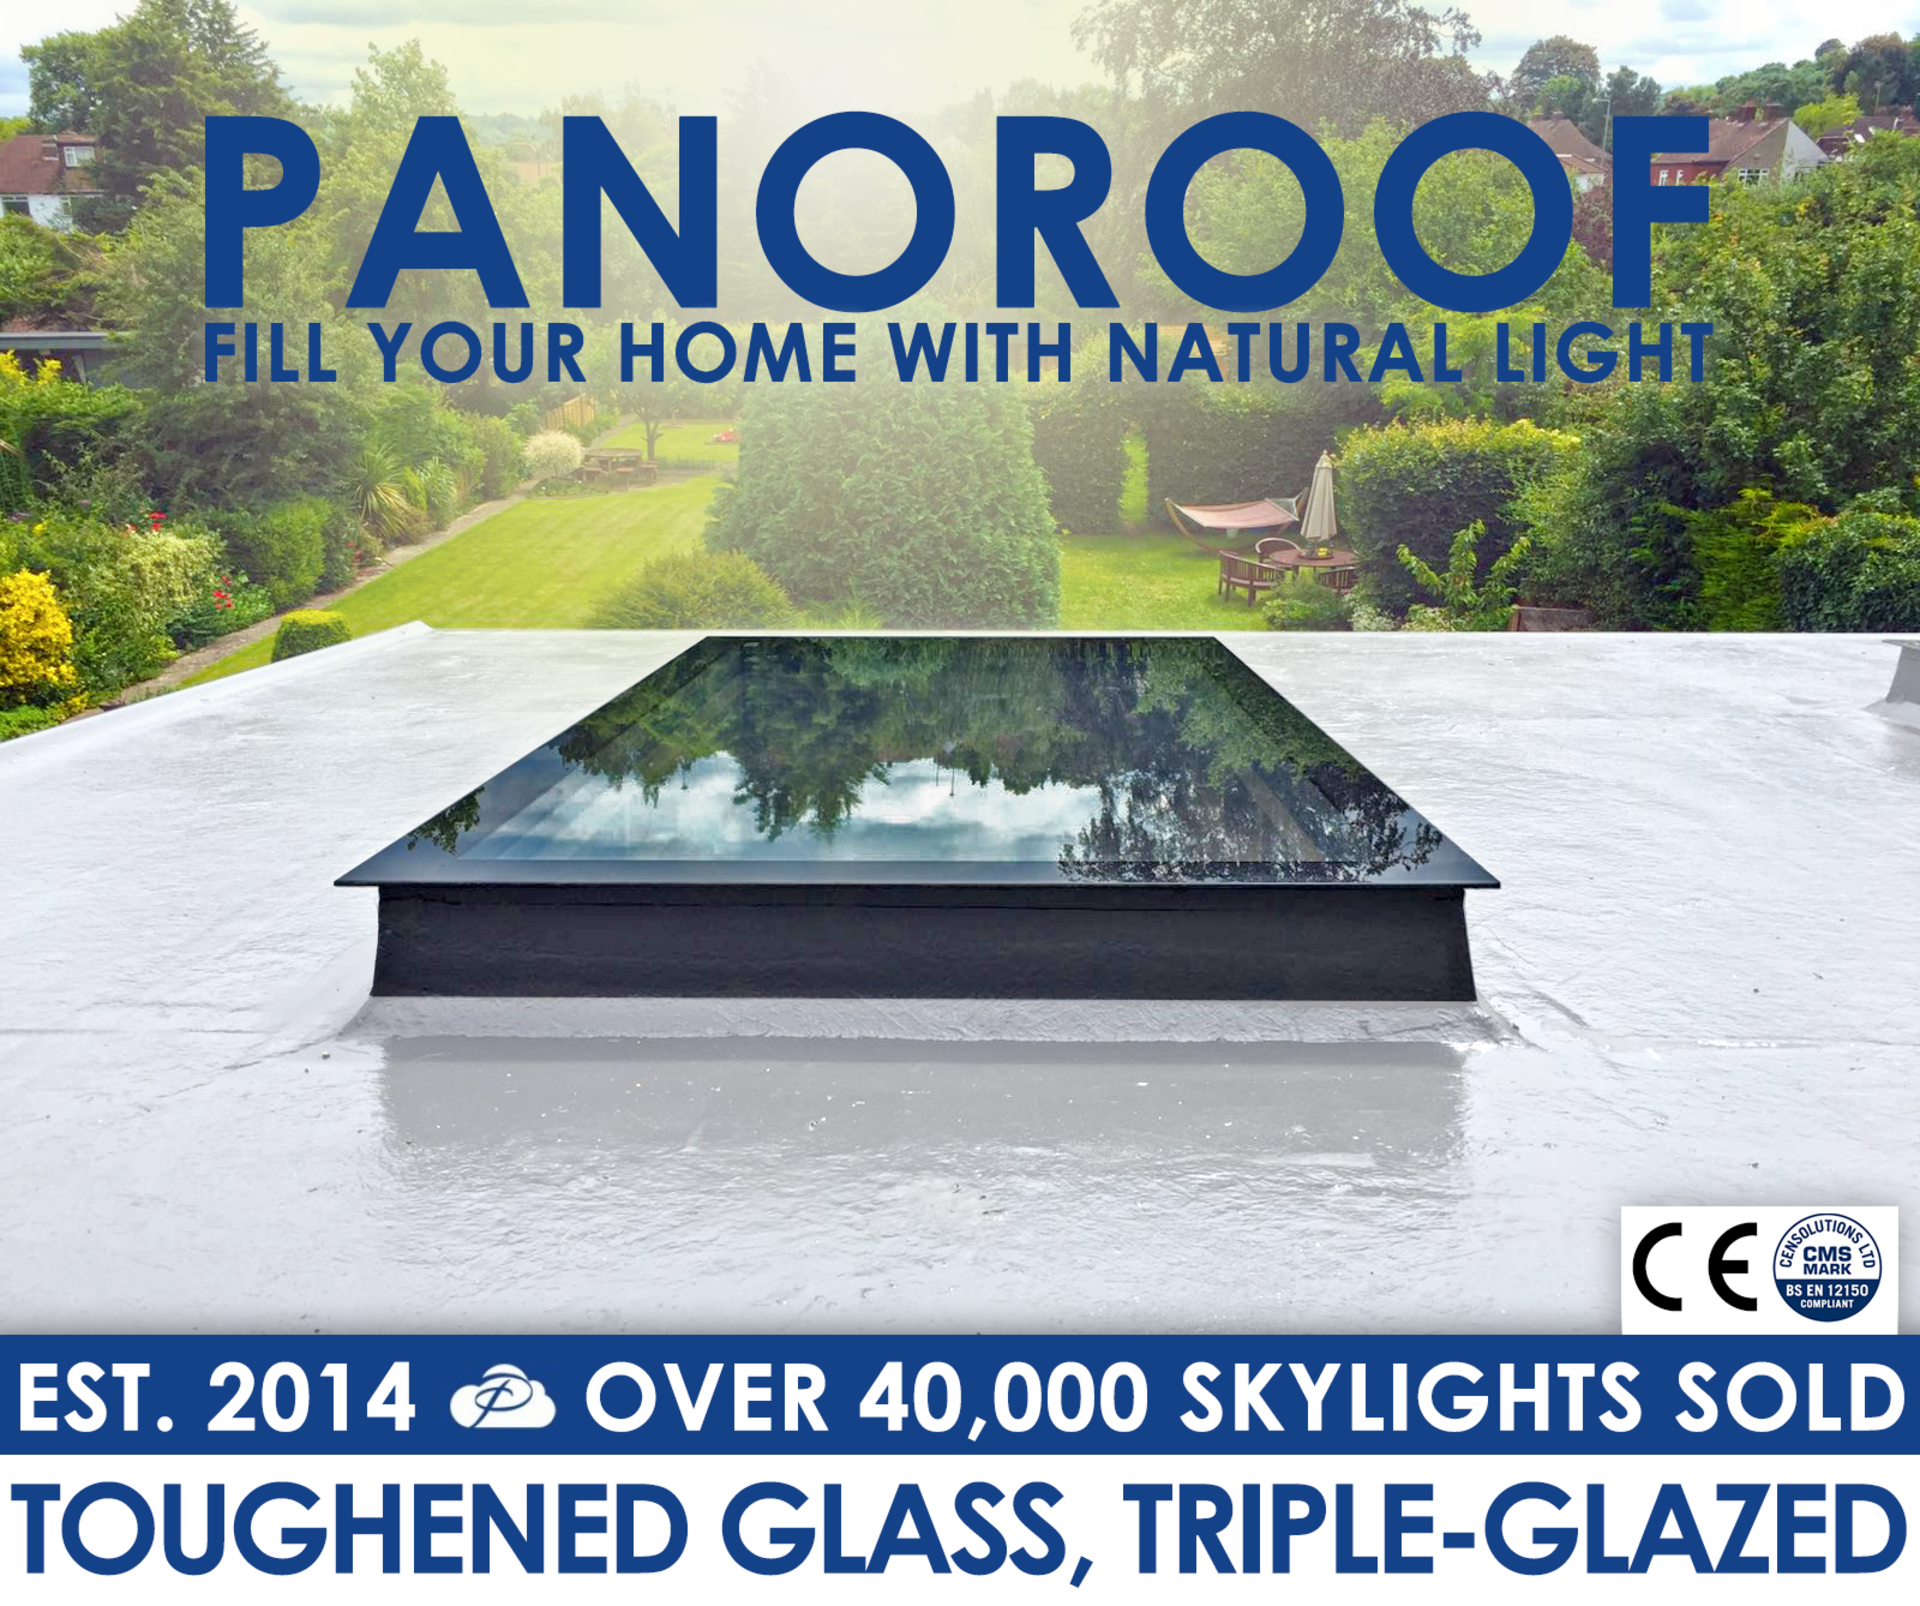 Panoroof 2000x3000mm (inside Size Visable glass area) Seamless Glass Skylight Flat Roof Rooflight